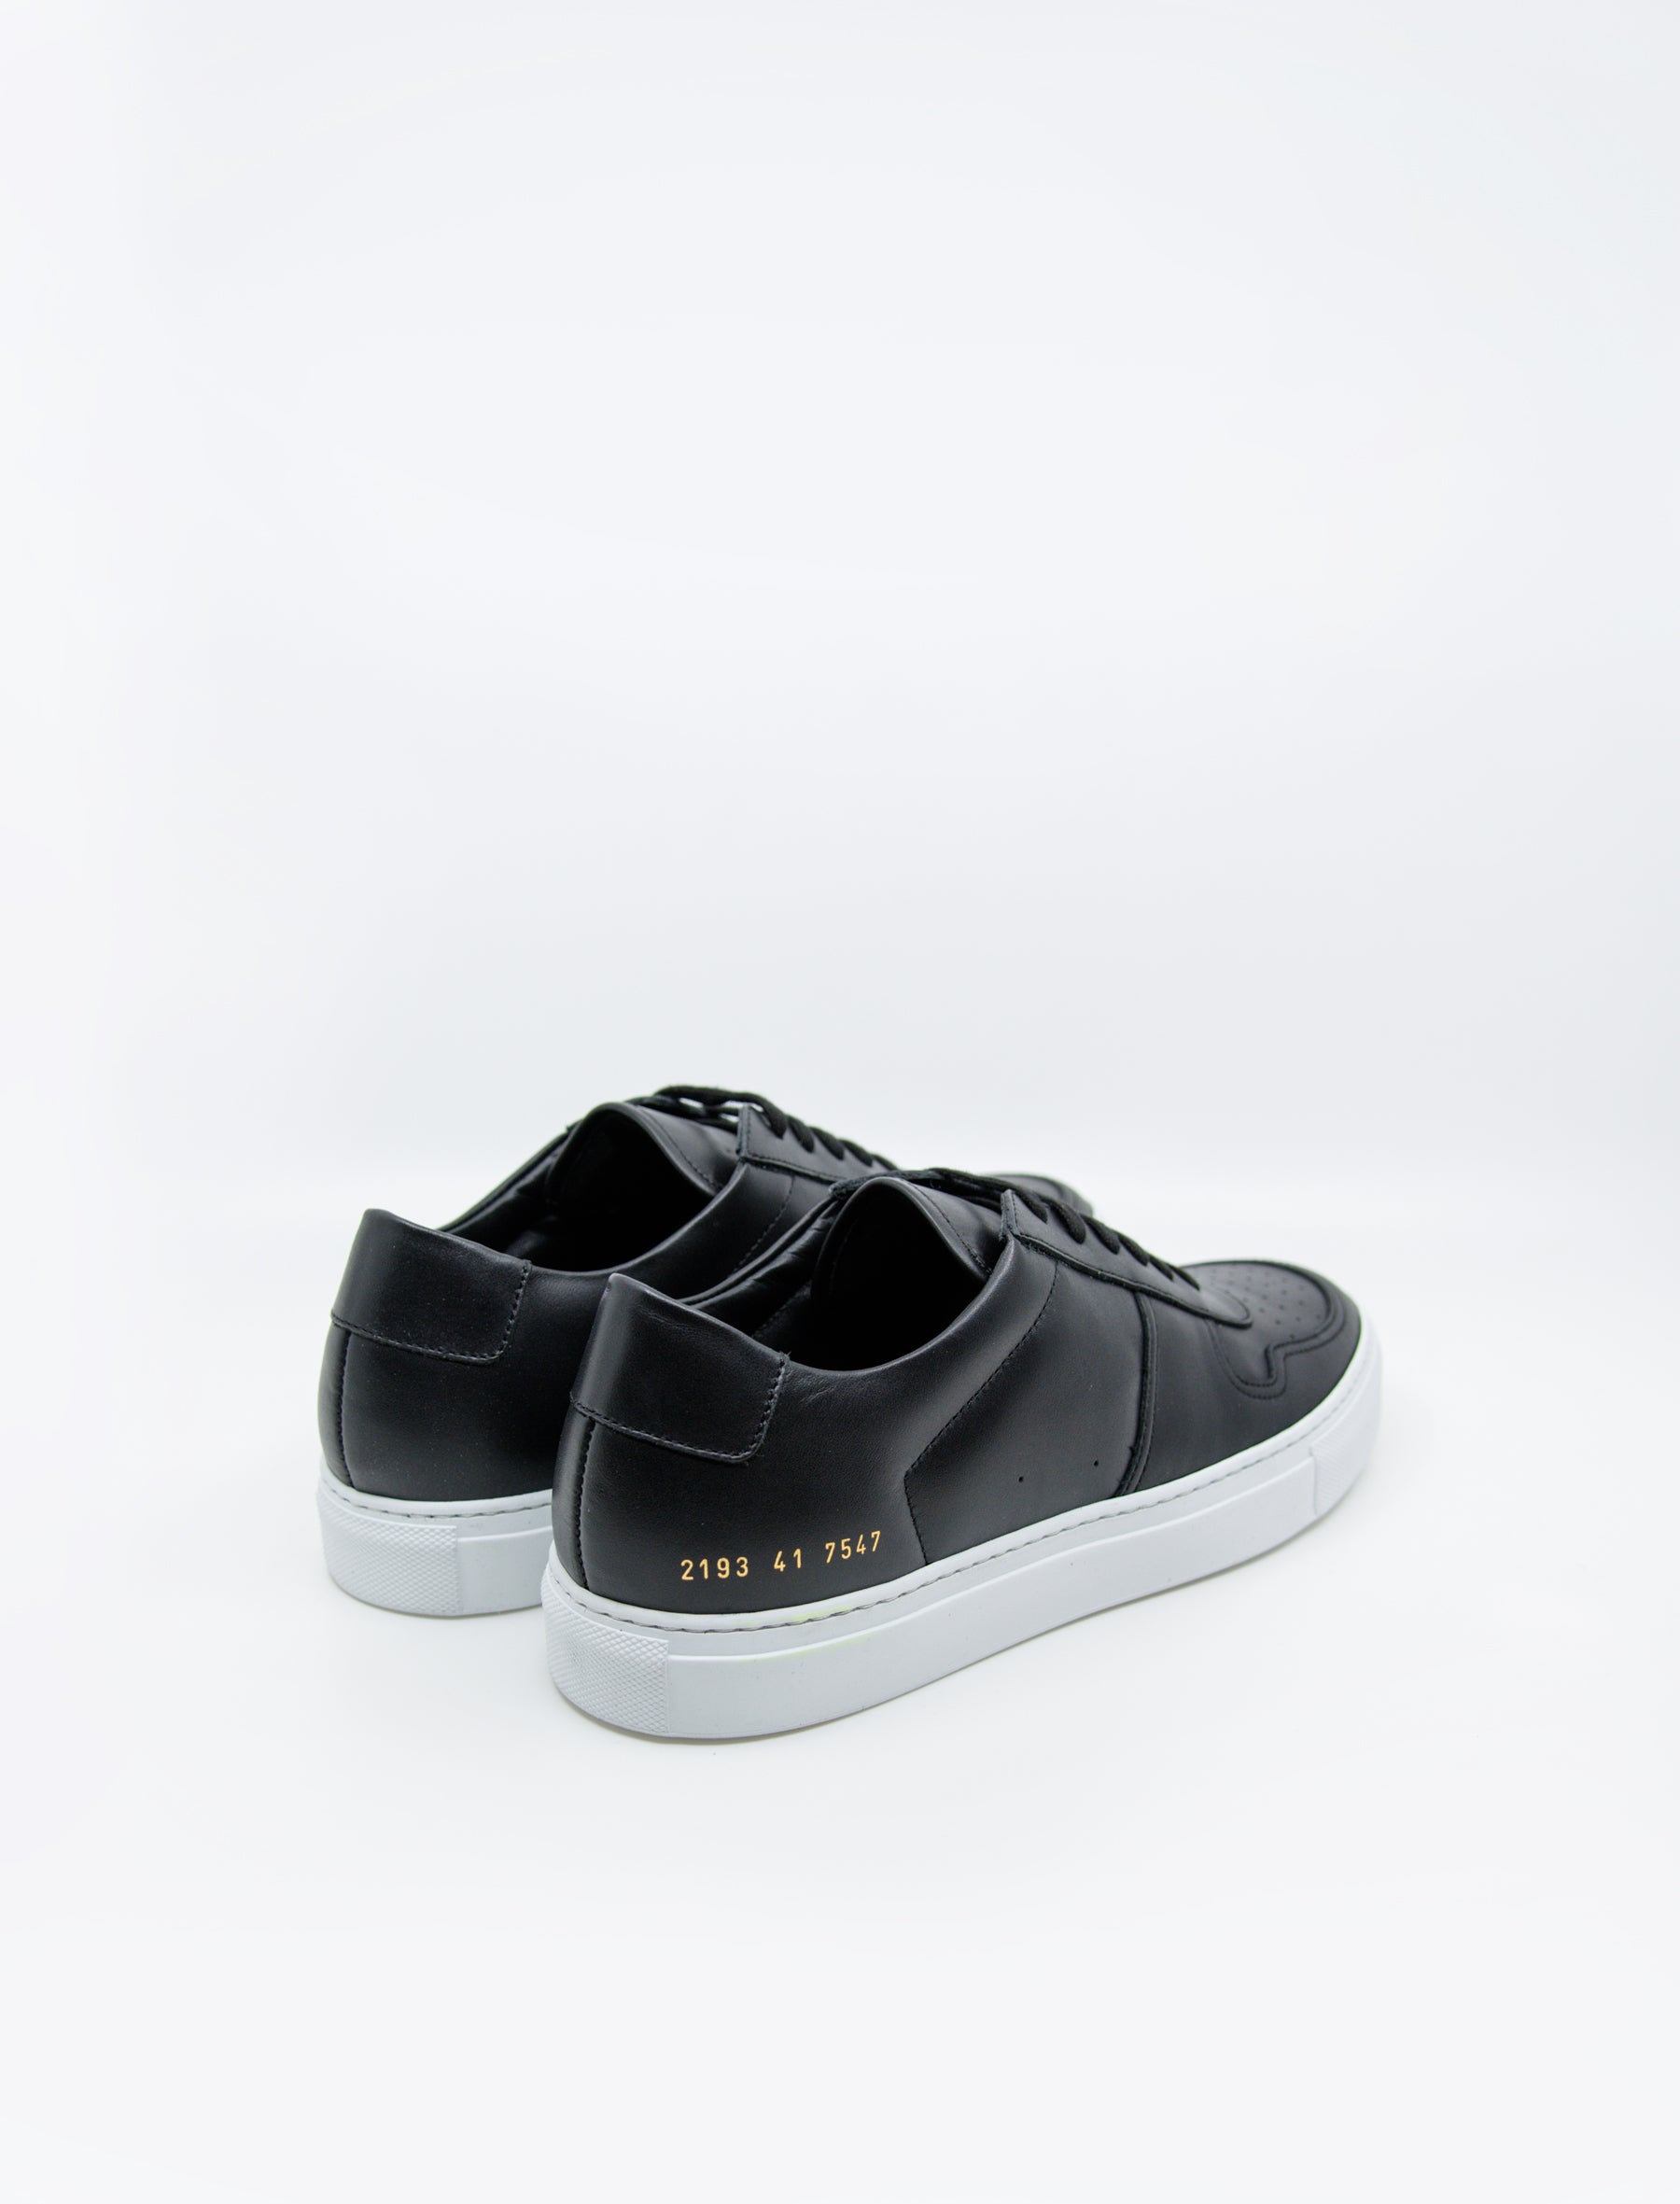 10053b561a895 ... Common Projects Bball Low Black White · Bball Low Black White